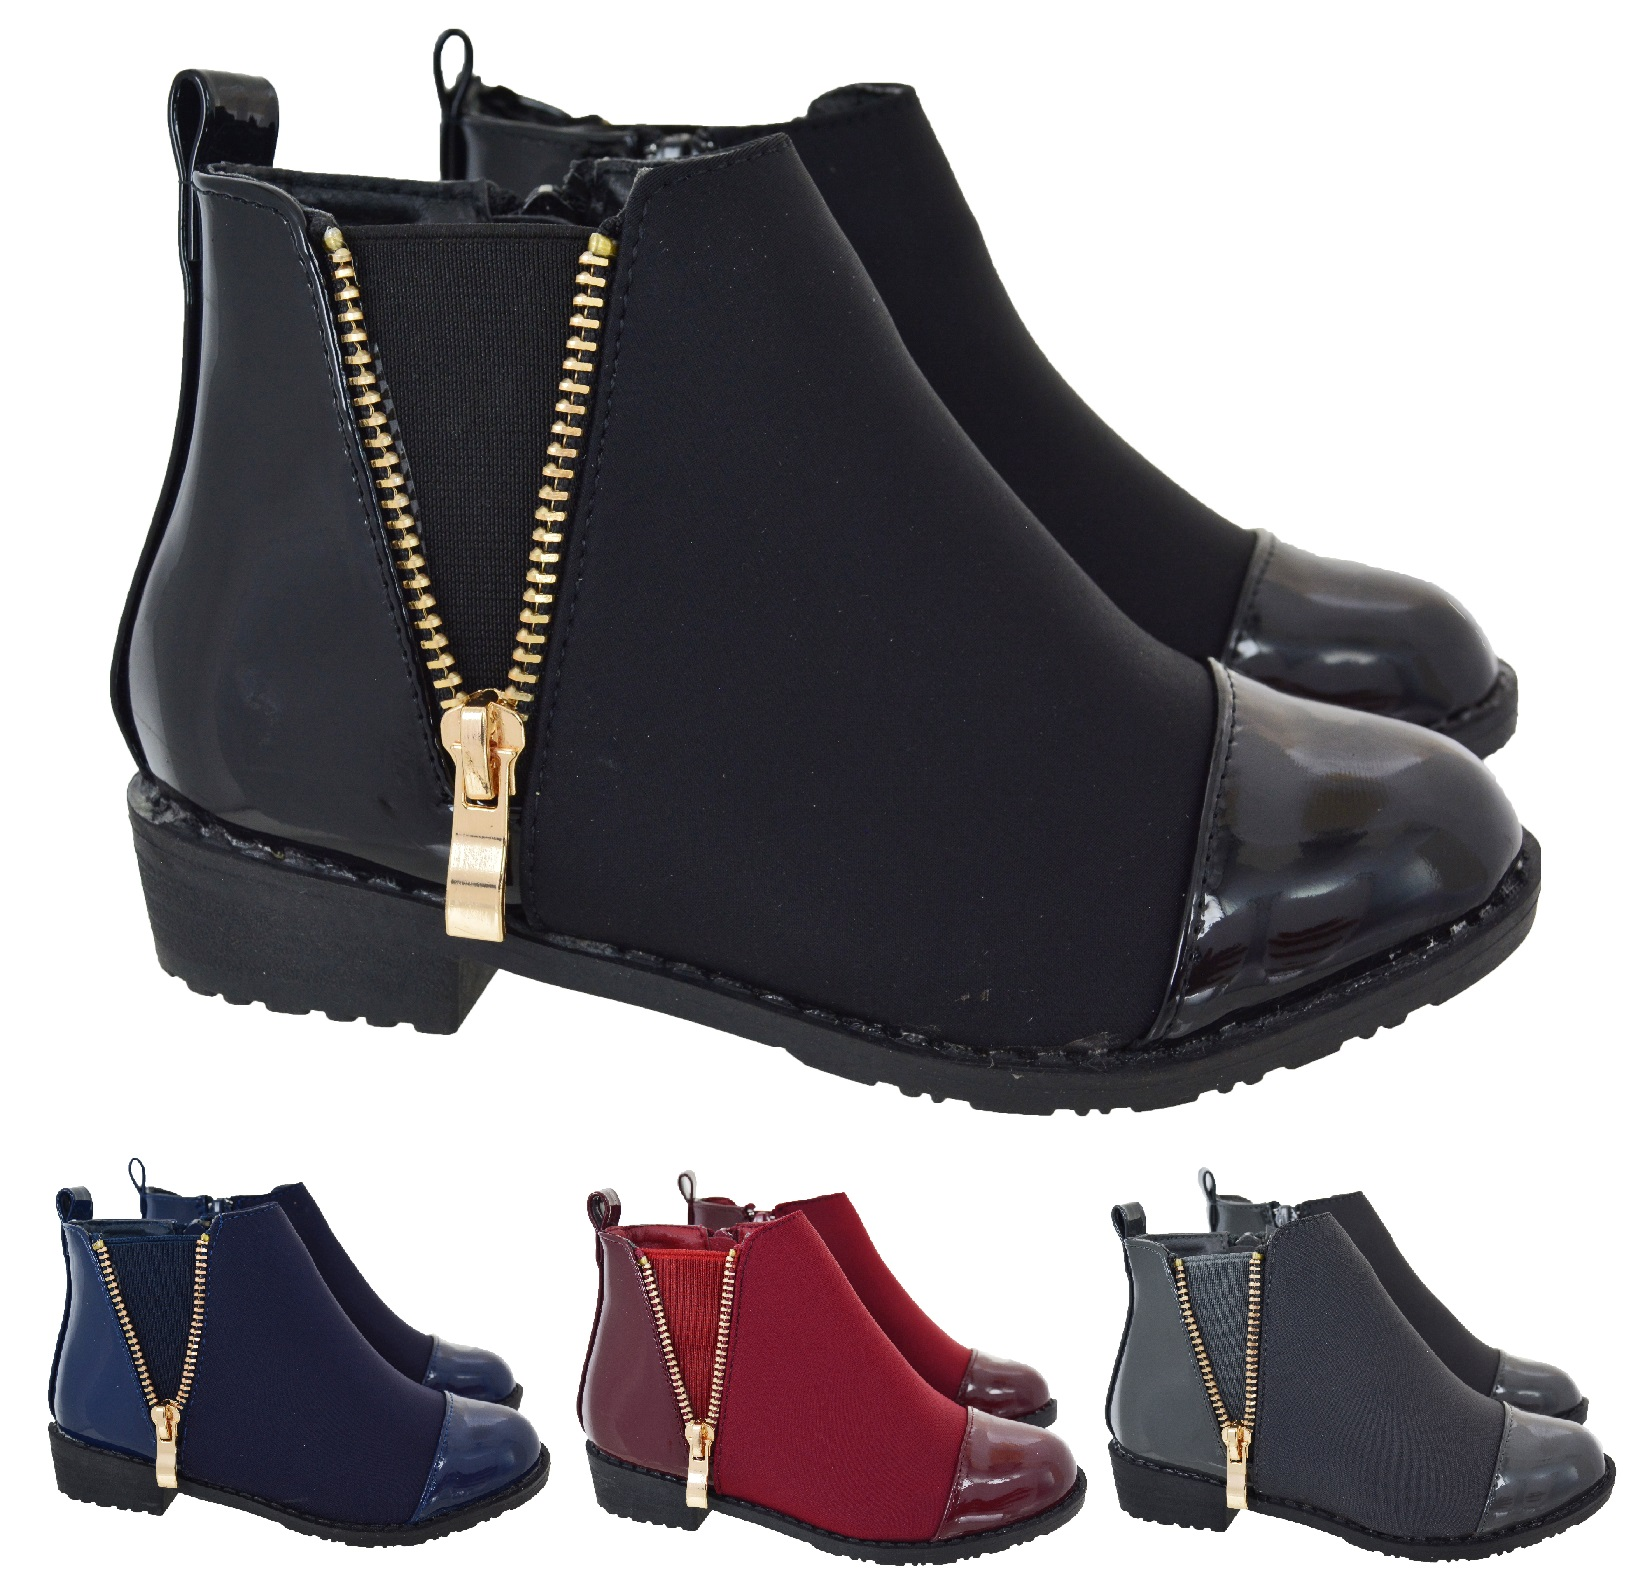 Details about KIDS GIRLS CHILDREN LOW FLAT HEEL ANKLE SHOES ZIP WINTER  PATENT CHELSEA BOOTS SZ